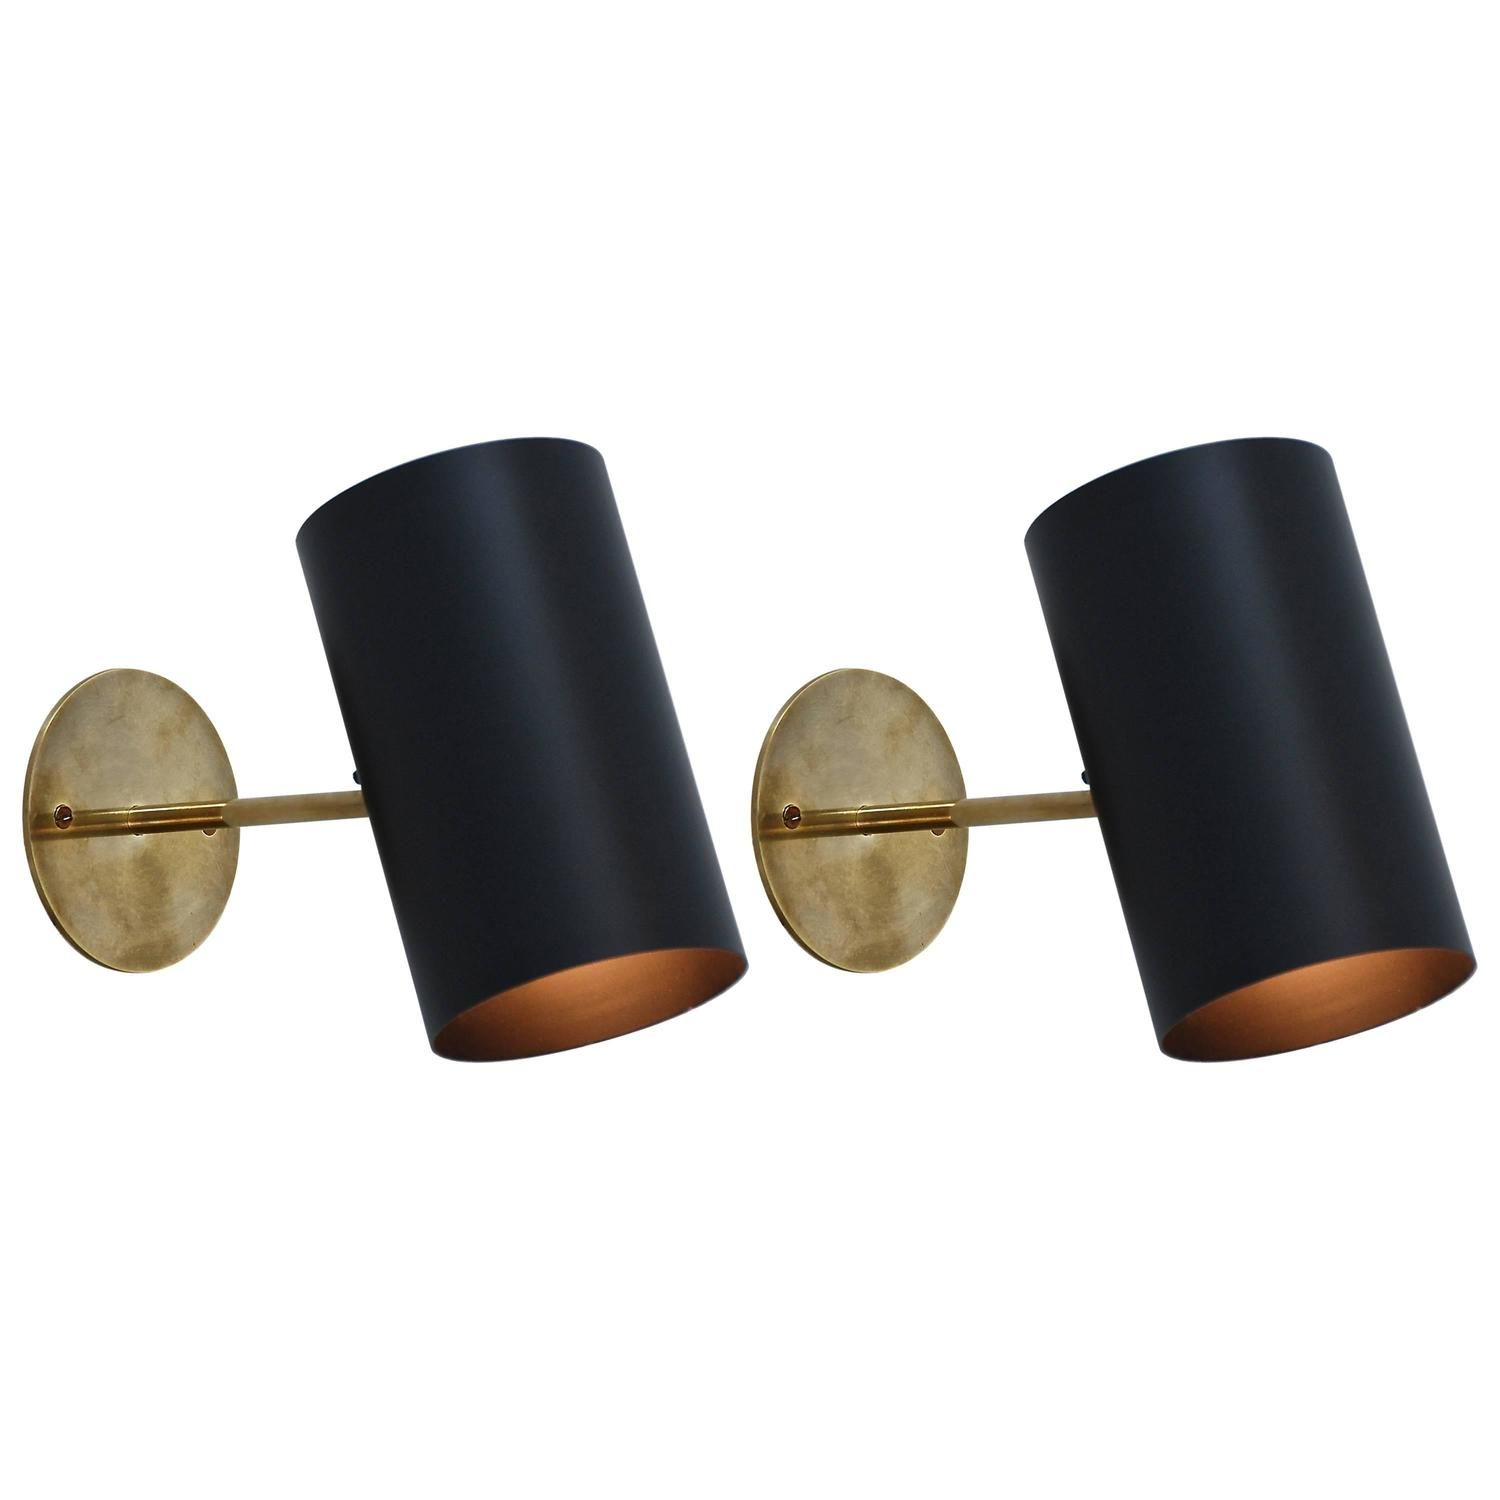 Boris Lacroix Black Cylinder Sconces | From a unique collection of antique and modern wall lights and sconces at ...  sc 1 st  Pinterest & Boris Lacroix Black Cylinder Sconces | Pinterest | Modern wall ...